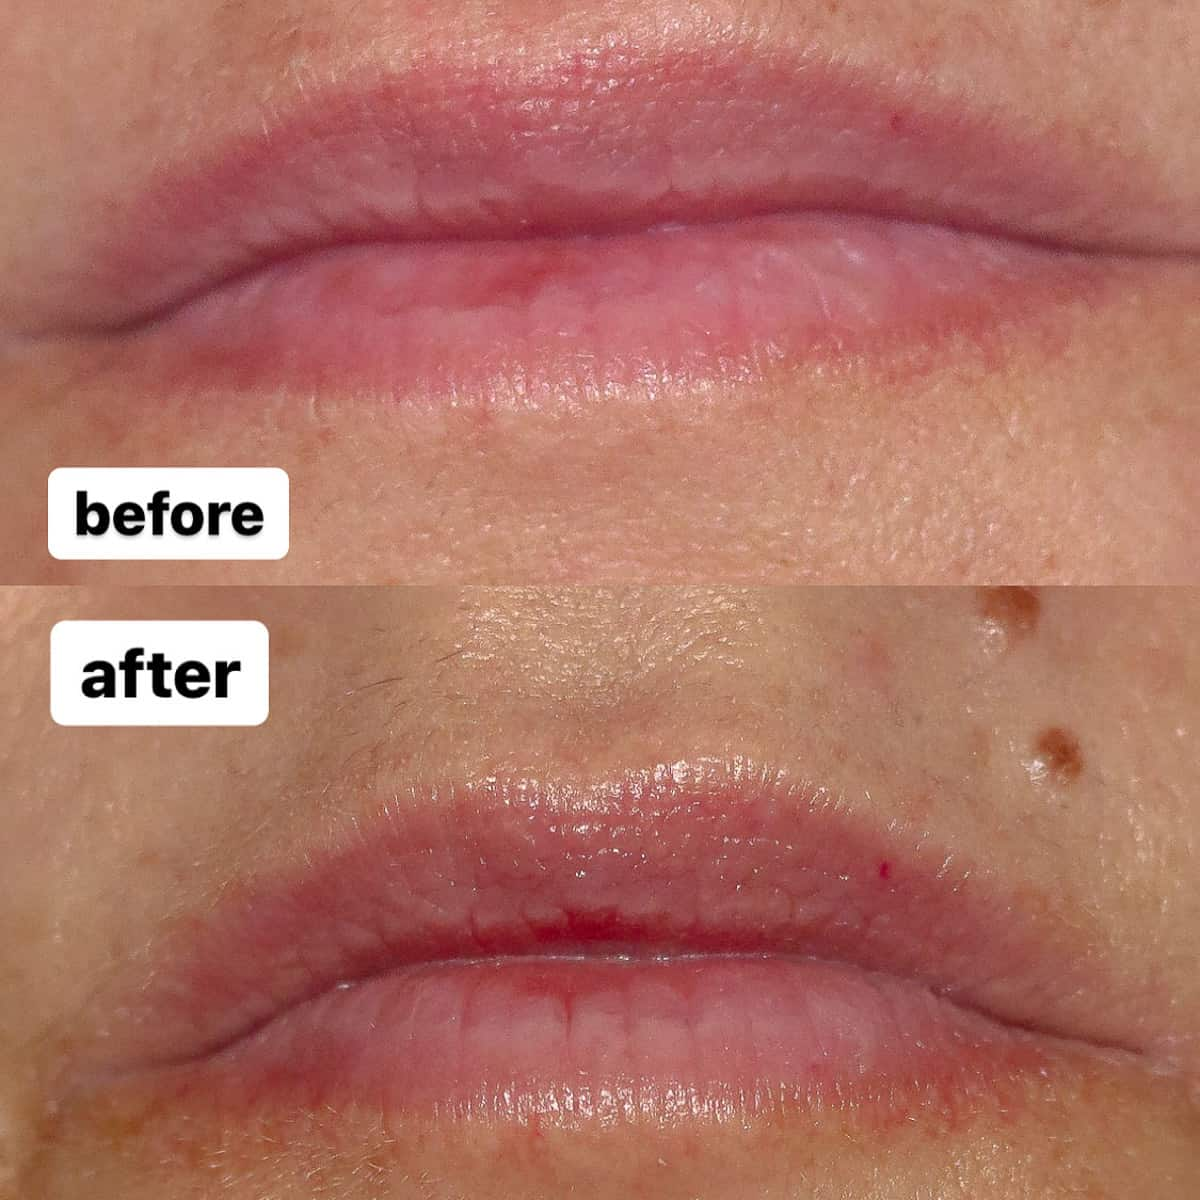 Before and after of my lips after using Neostrata Targeted Lip Filler for 1 week